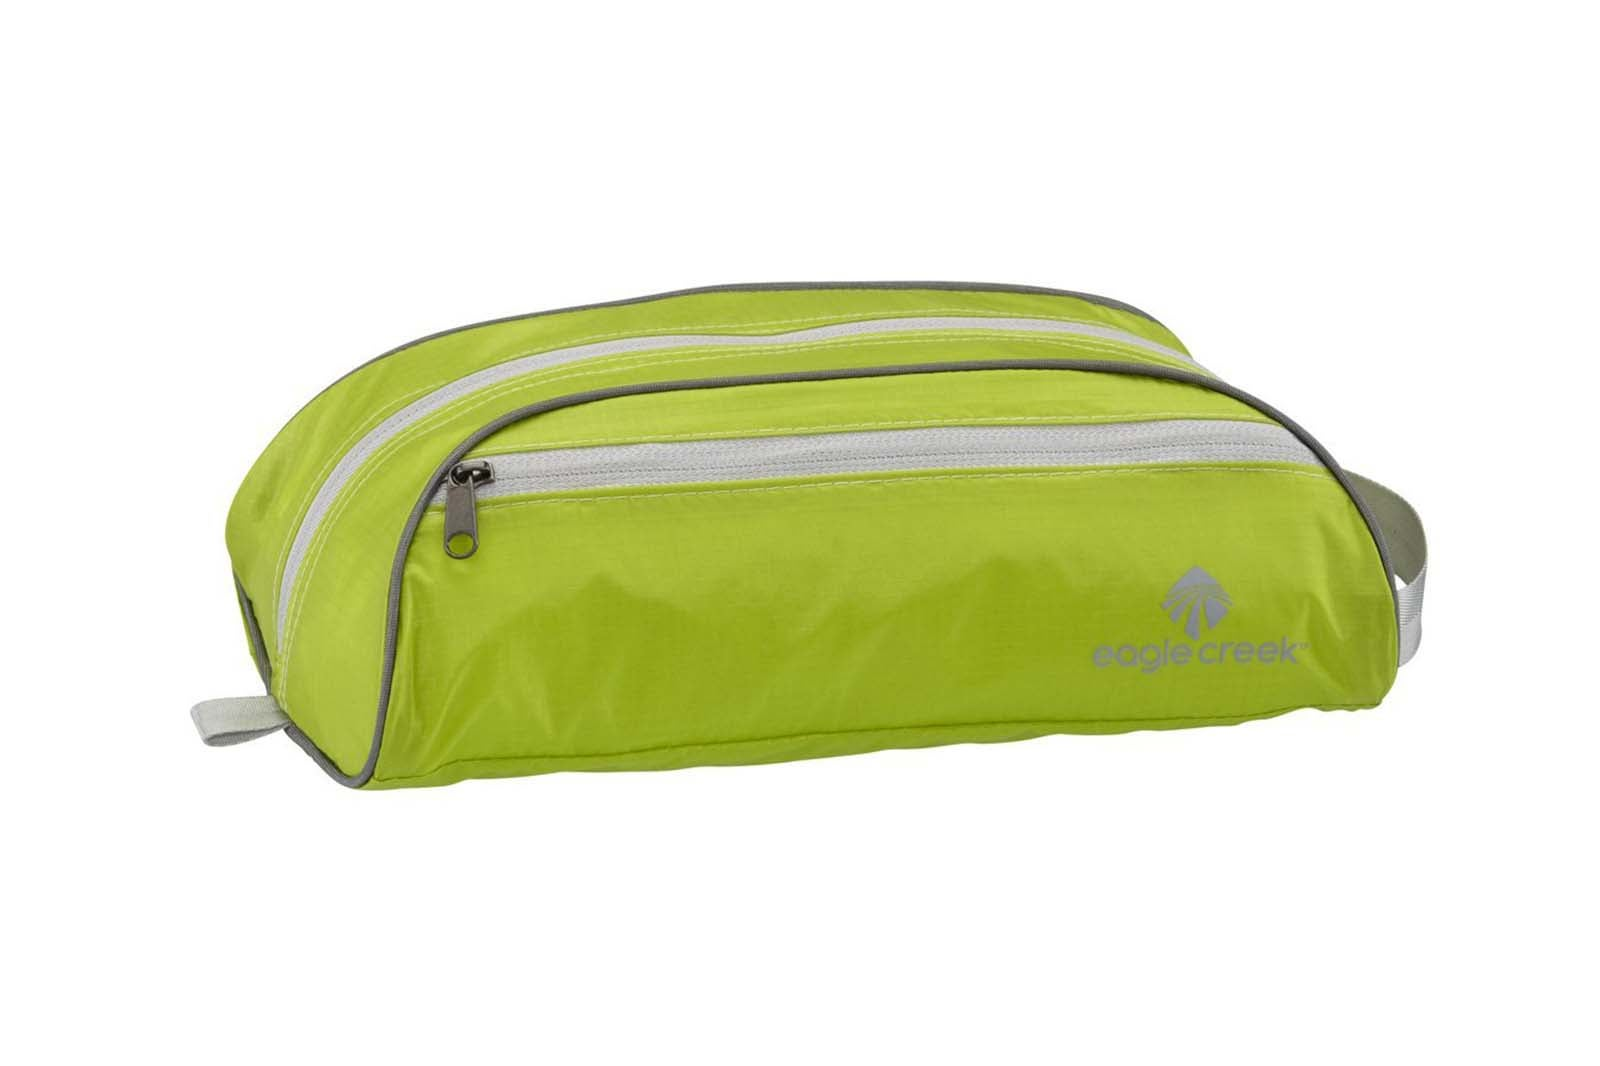 agle Creek Pack-It Specter Quick Trip Toiletry Bag.